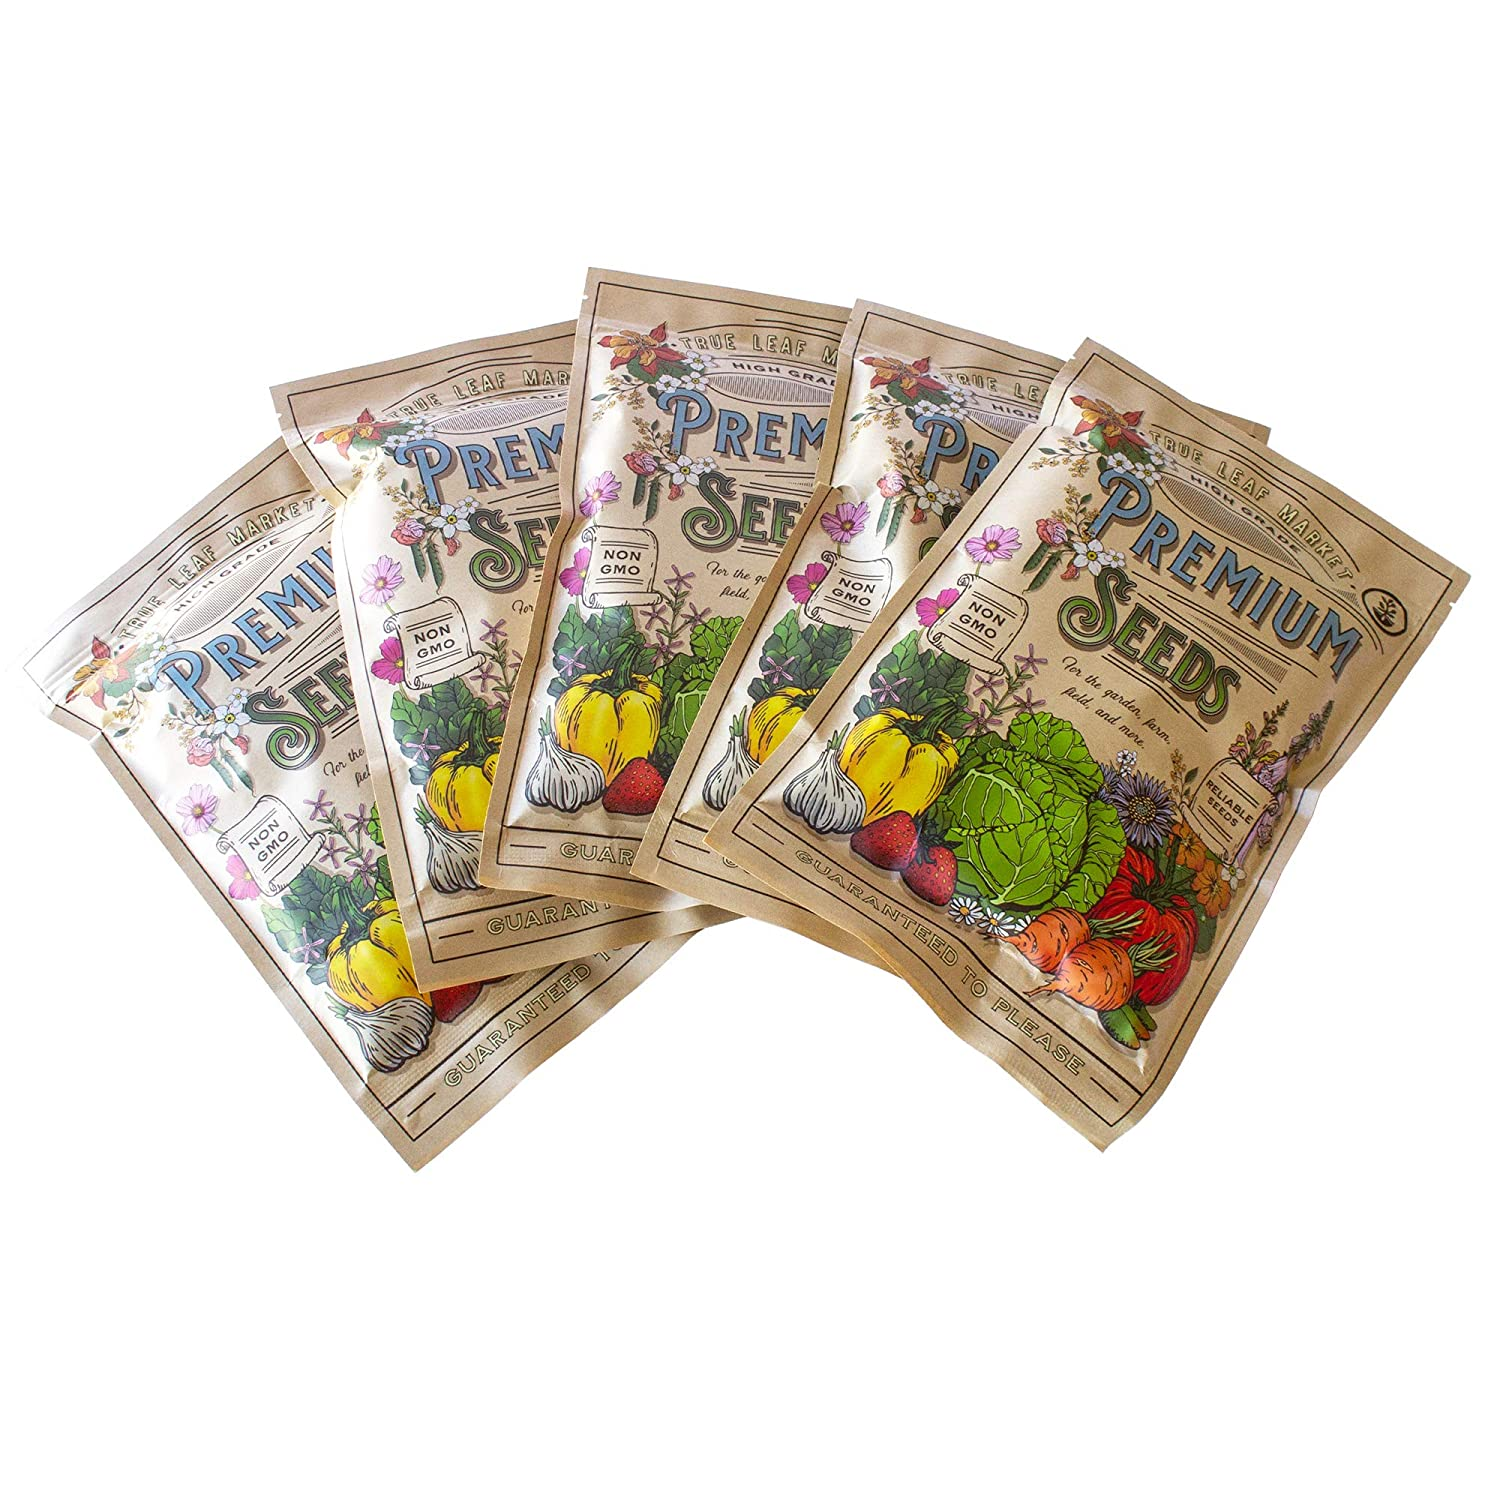 Certified Organic Hard Red Max 65% OFF Wheat Seed: Discount is also underway Pre-Measured Sprouting 5